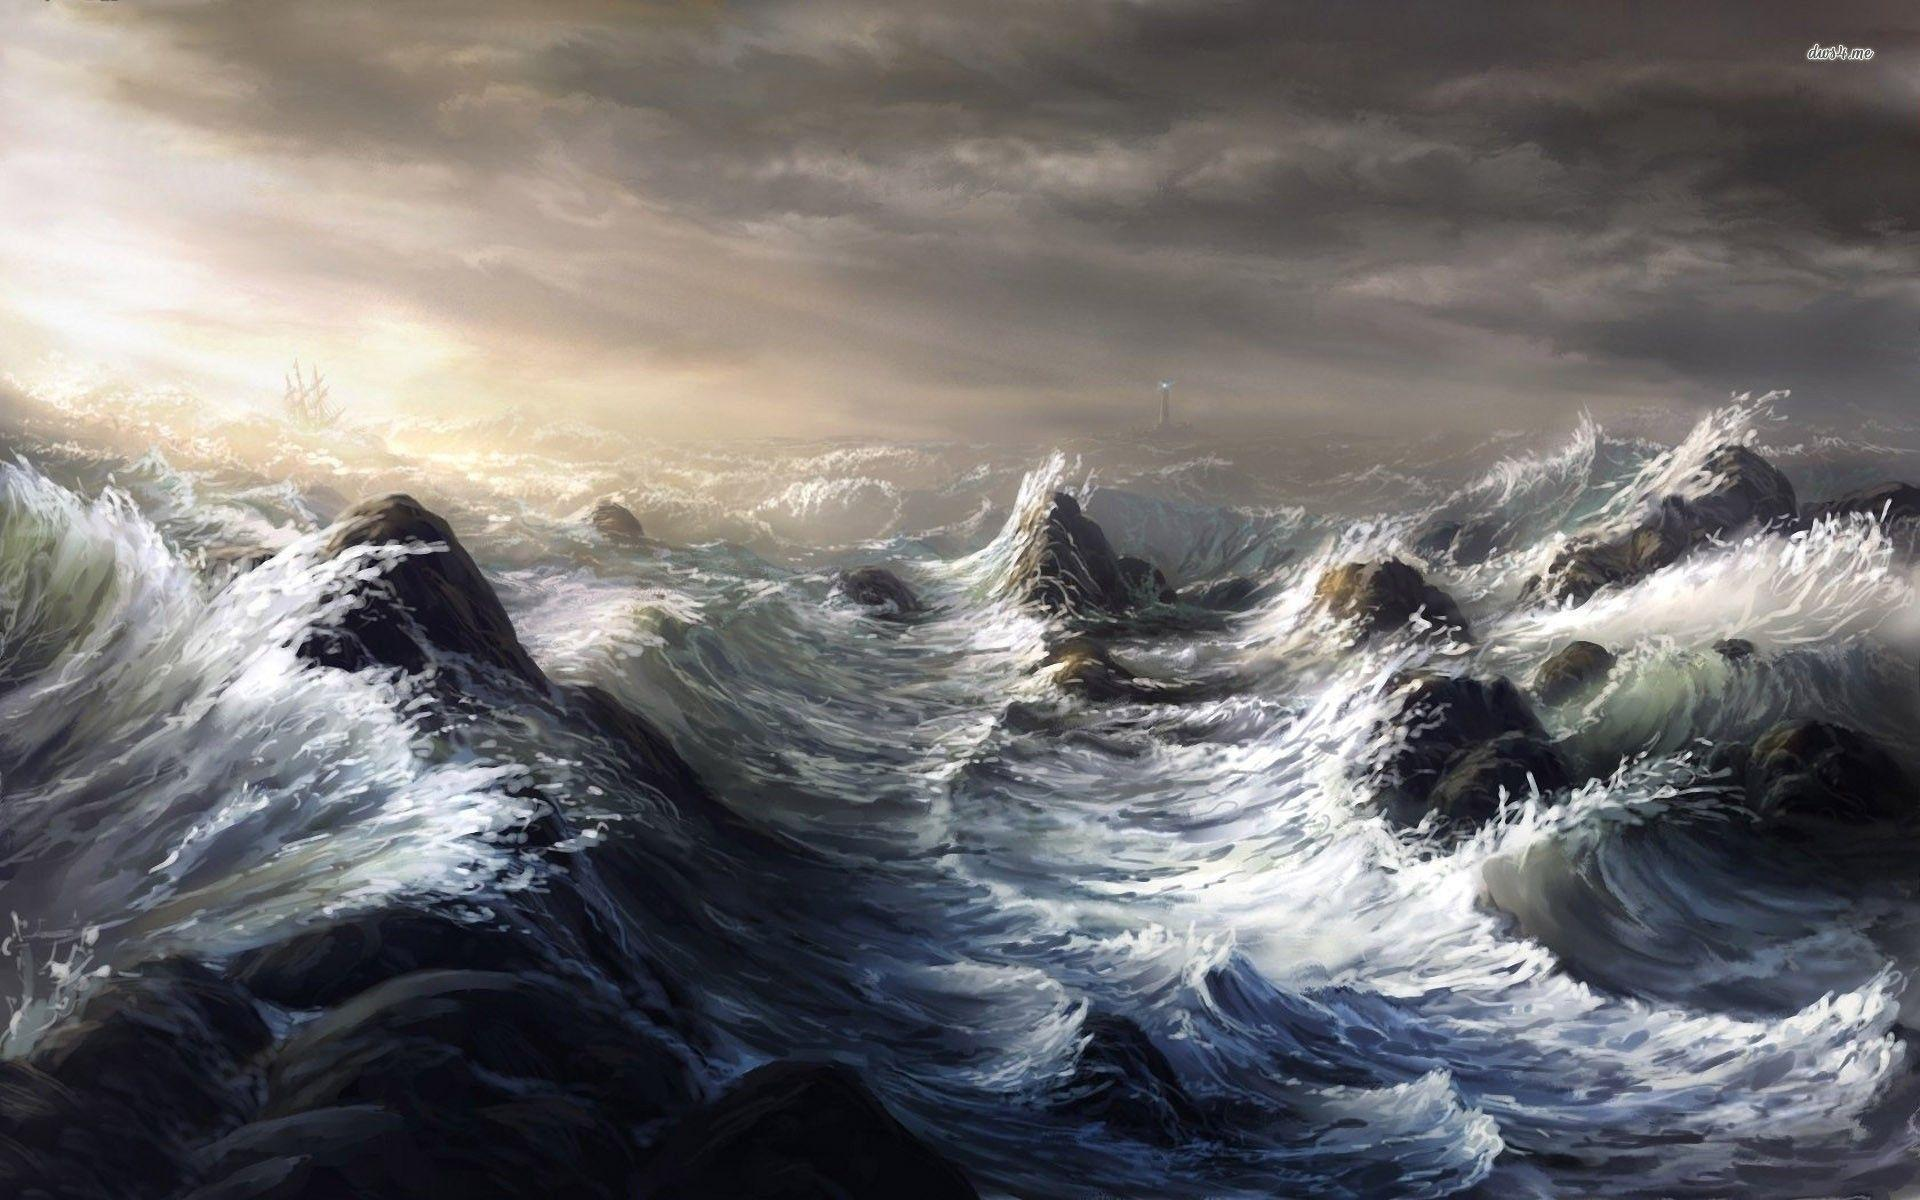 Stormy Ocean Wallpapers - Wallpaper Cave